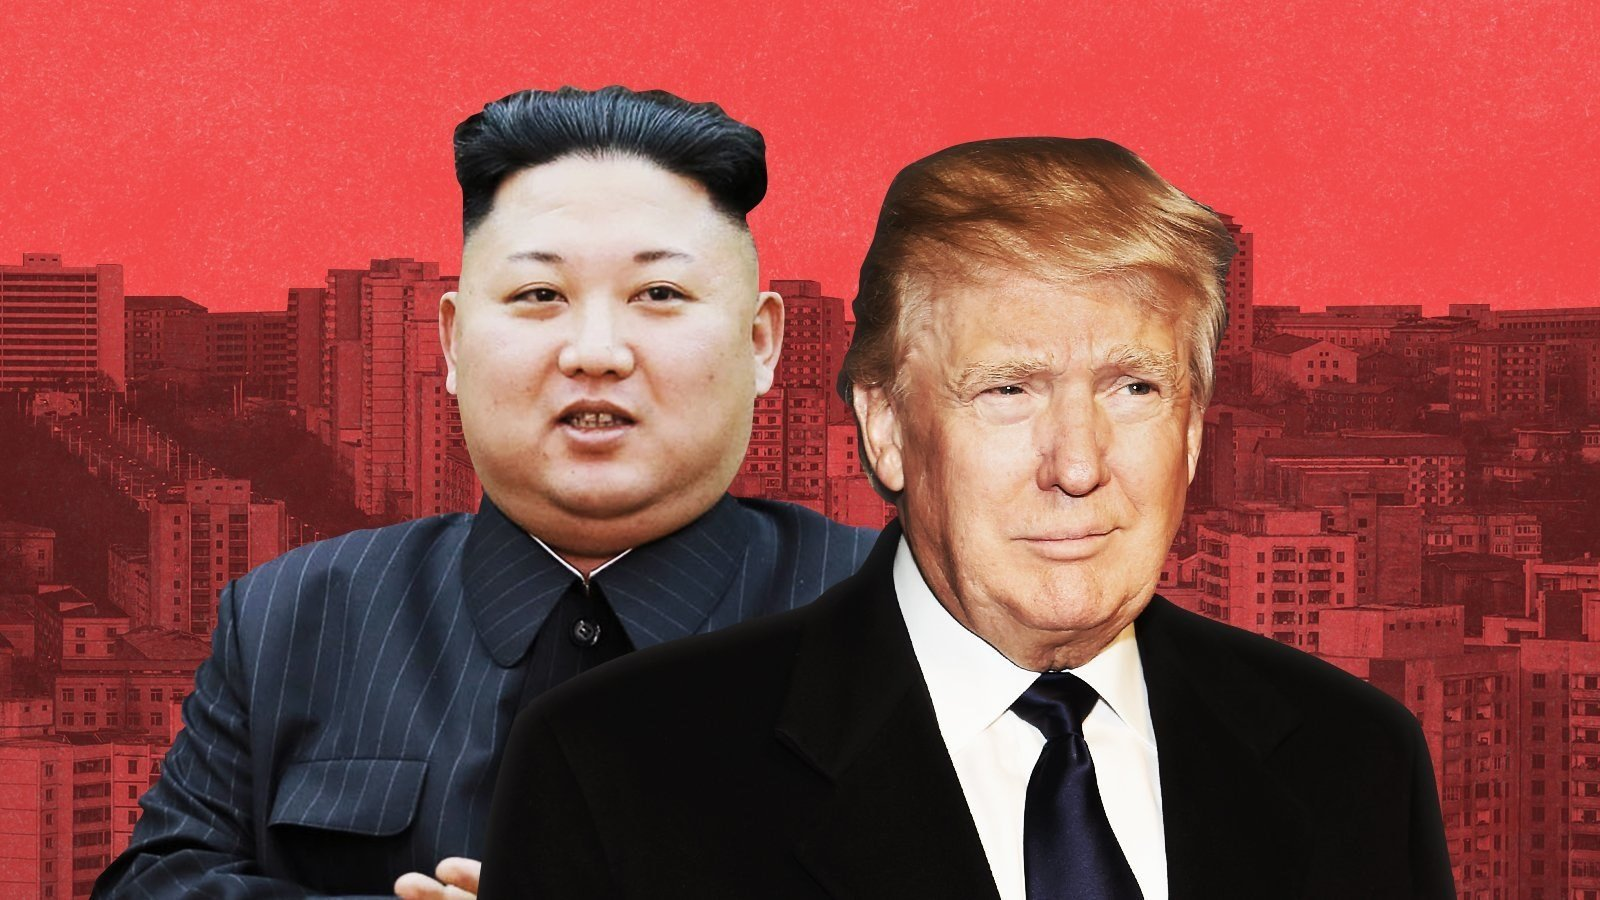 President Donald Trump's aides were working Wednesday to determine whether overnight warnings from North Korea might scuttle a highly anticipated summit with Kim Jong Un, even as some in the administration conceded the threats were an expected bump in...